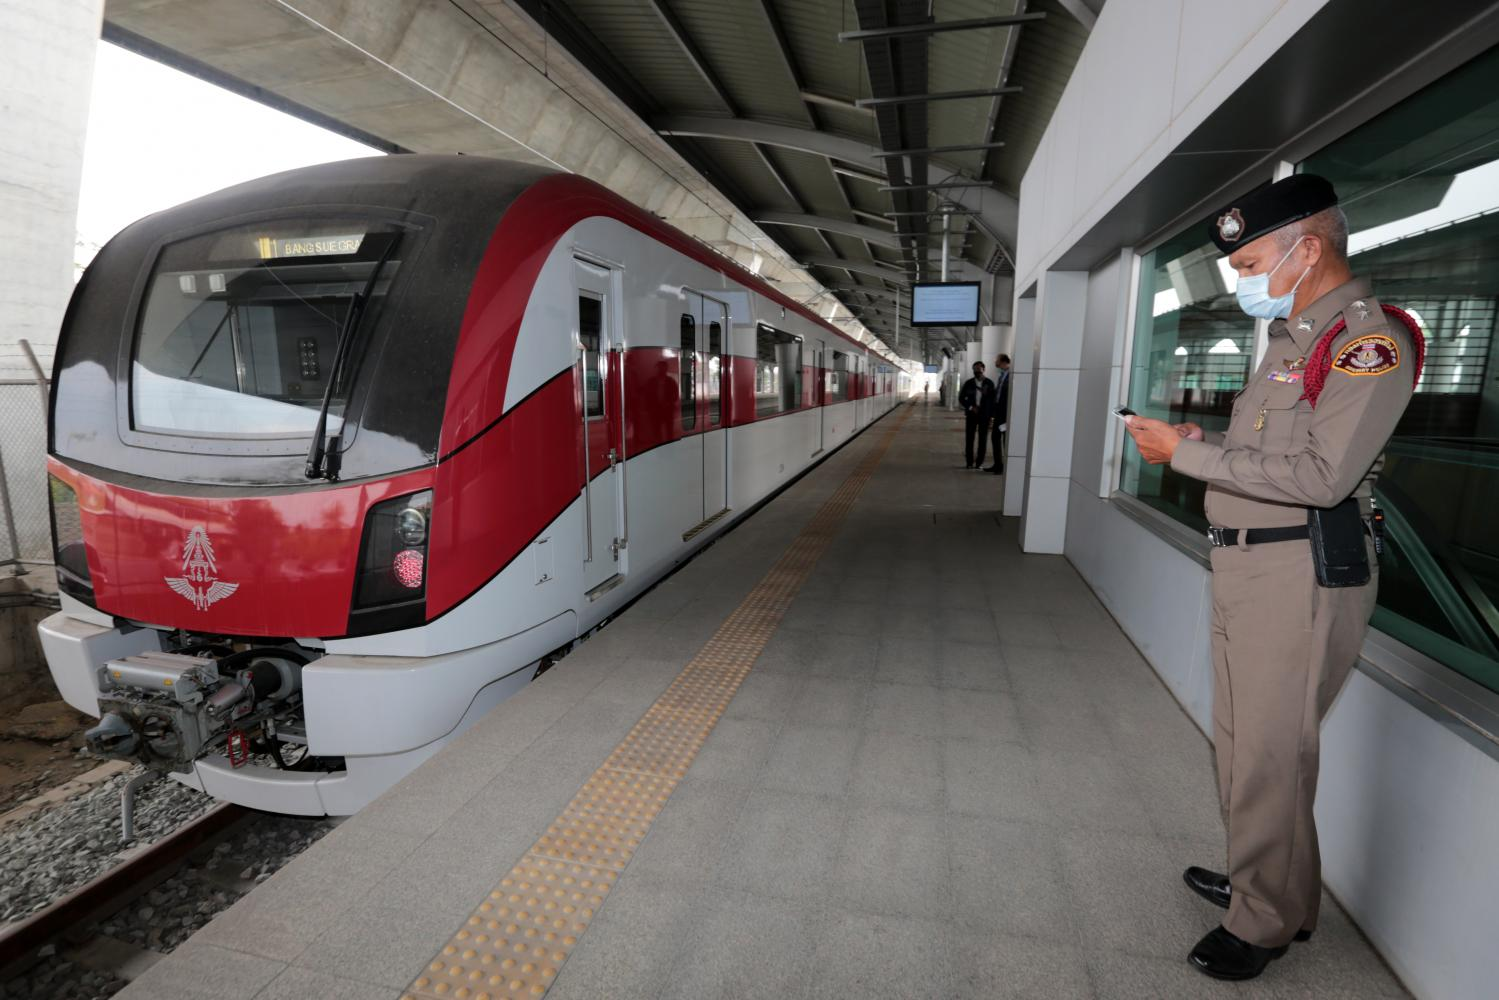 A policeman stands near a Red Line train on Tuesday during a visit by the transport minister. (Photo by Chanat Katanyu)